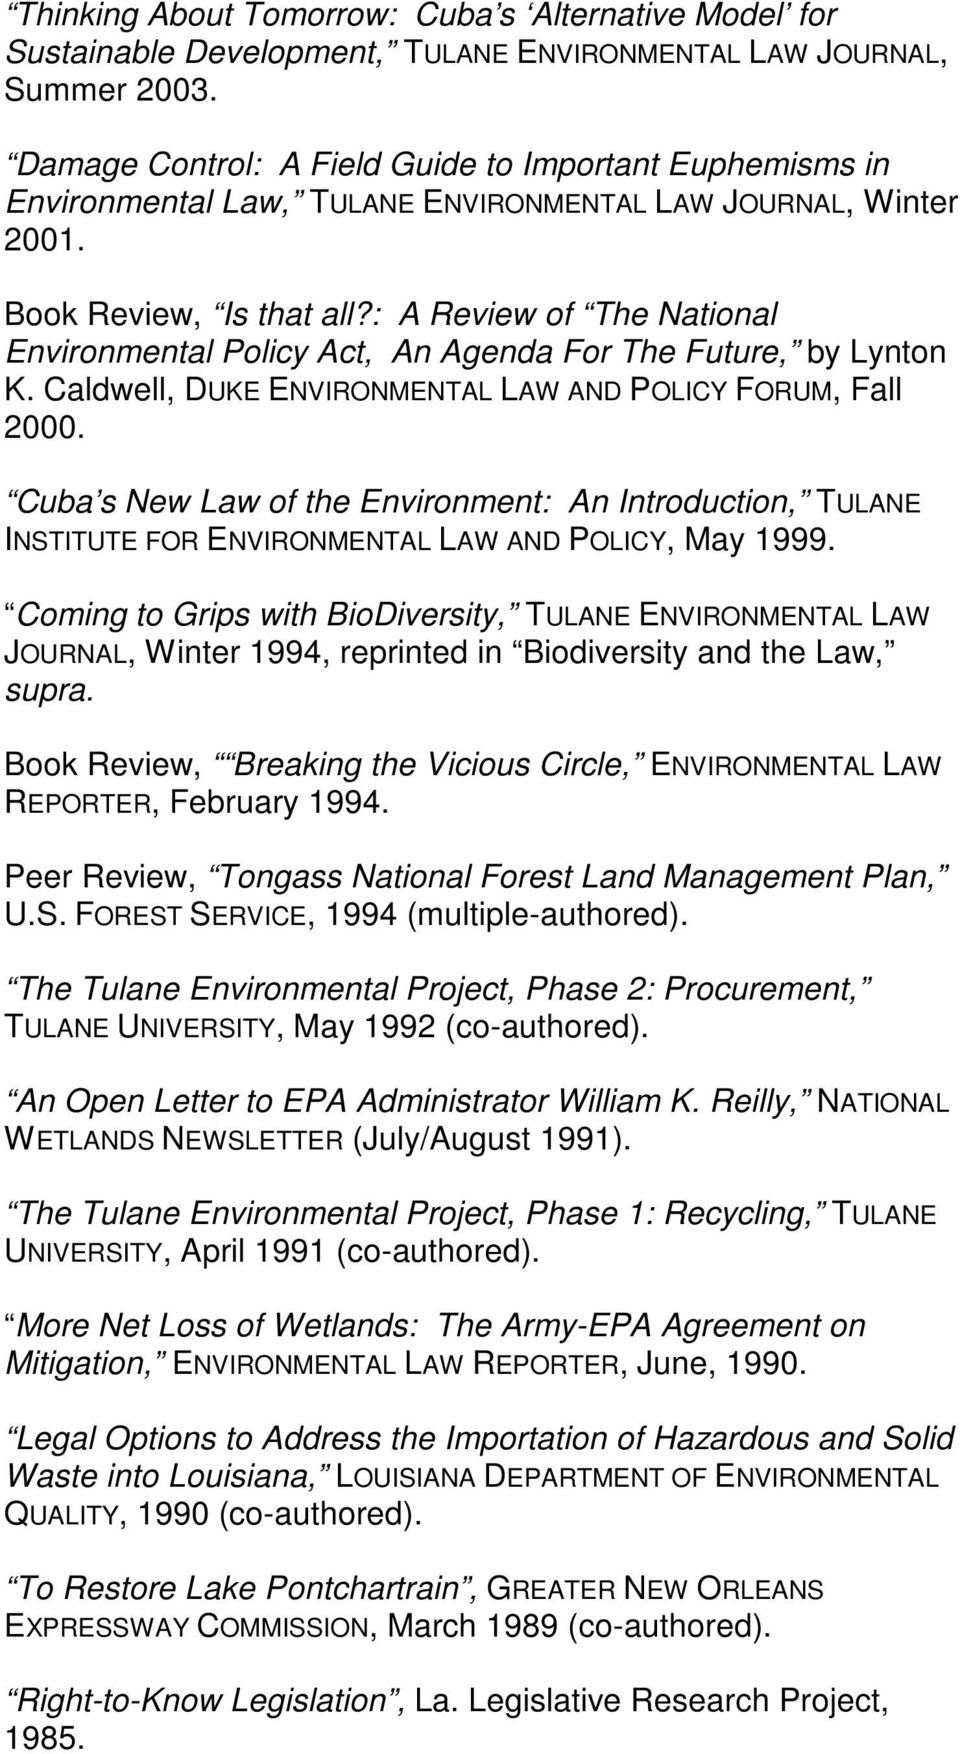 : A Review of The National Environmental Policy Act, An Agenda For The Future, by Lynton K. Caldwell, DUKE ENVIRONMENTAL LAW AND POLICY FORUM, Fall 2000.